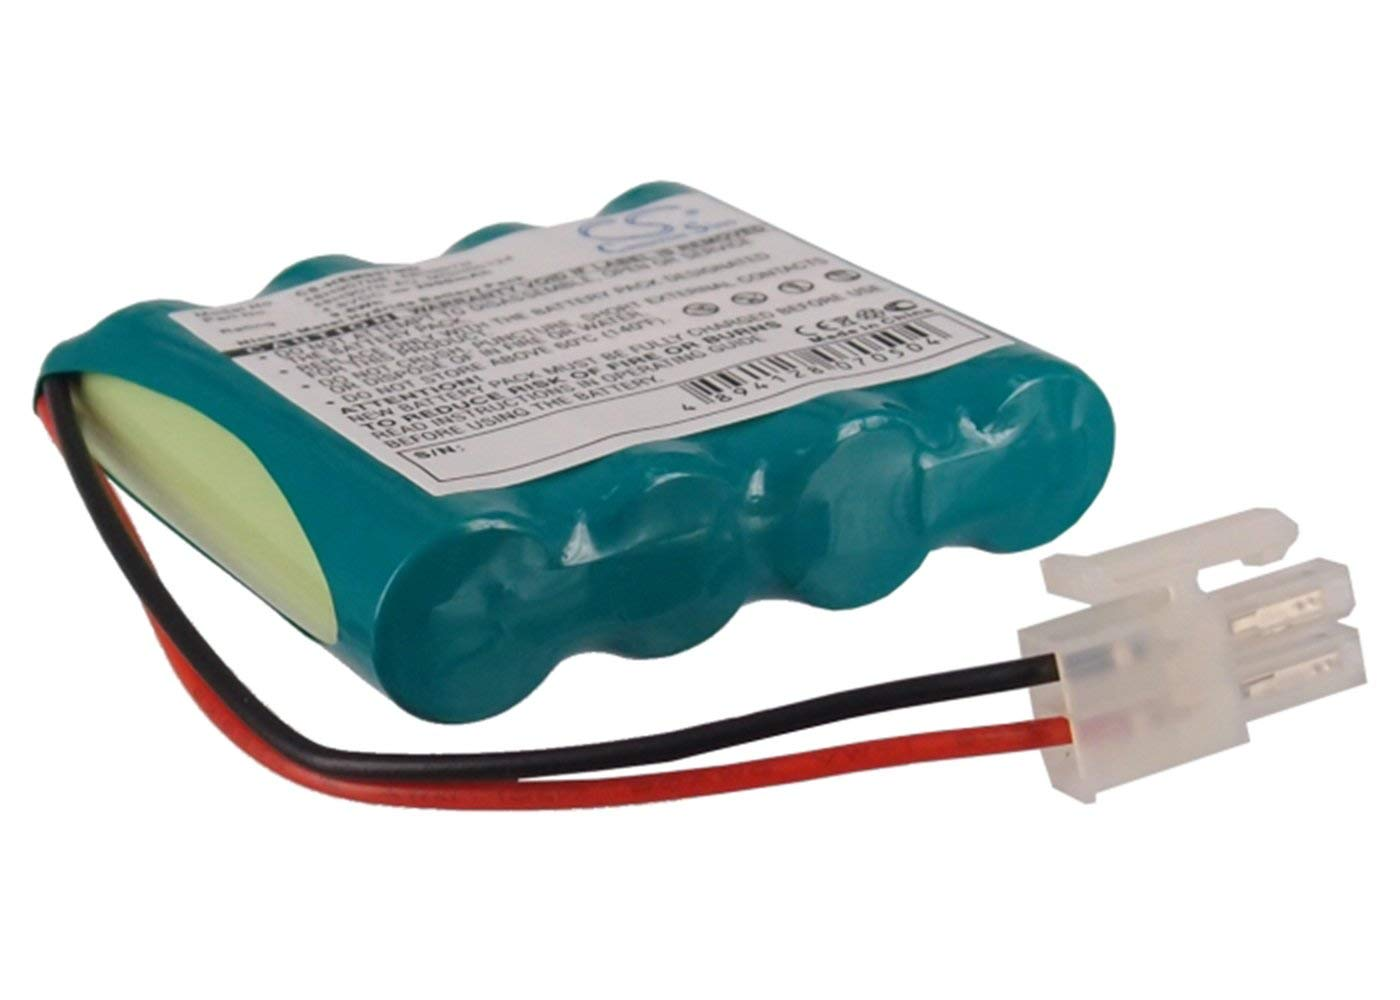 VINTRONS 4.8V Battery For OMRON HEM-907XL, HEM-907, MGH00124, 48H907N, 48H907N-AU, 48H907NE